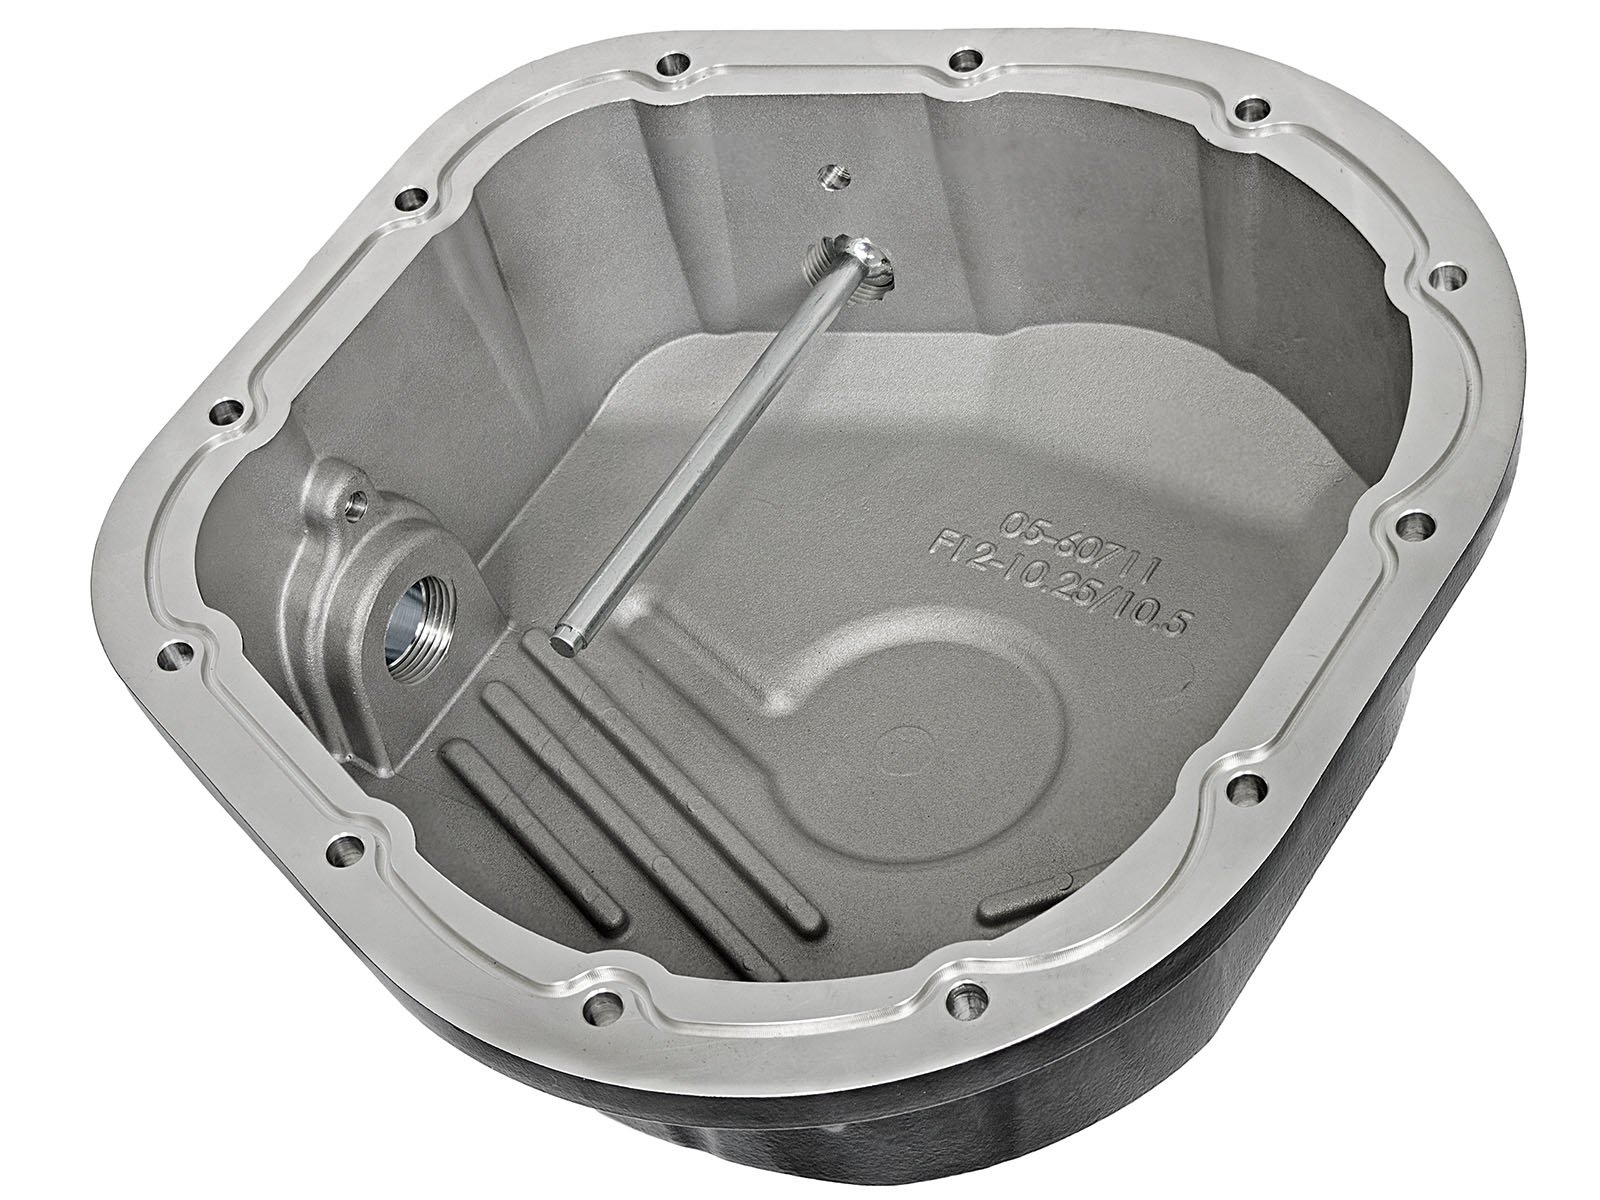 aFe Power 46-70022-WL Pro Series Machined Rear Differential Cover with Gear Oil by aFe Power (Image #3)